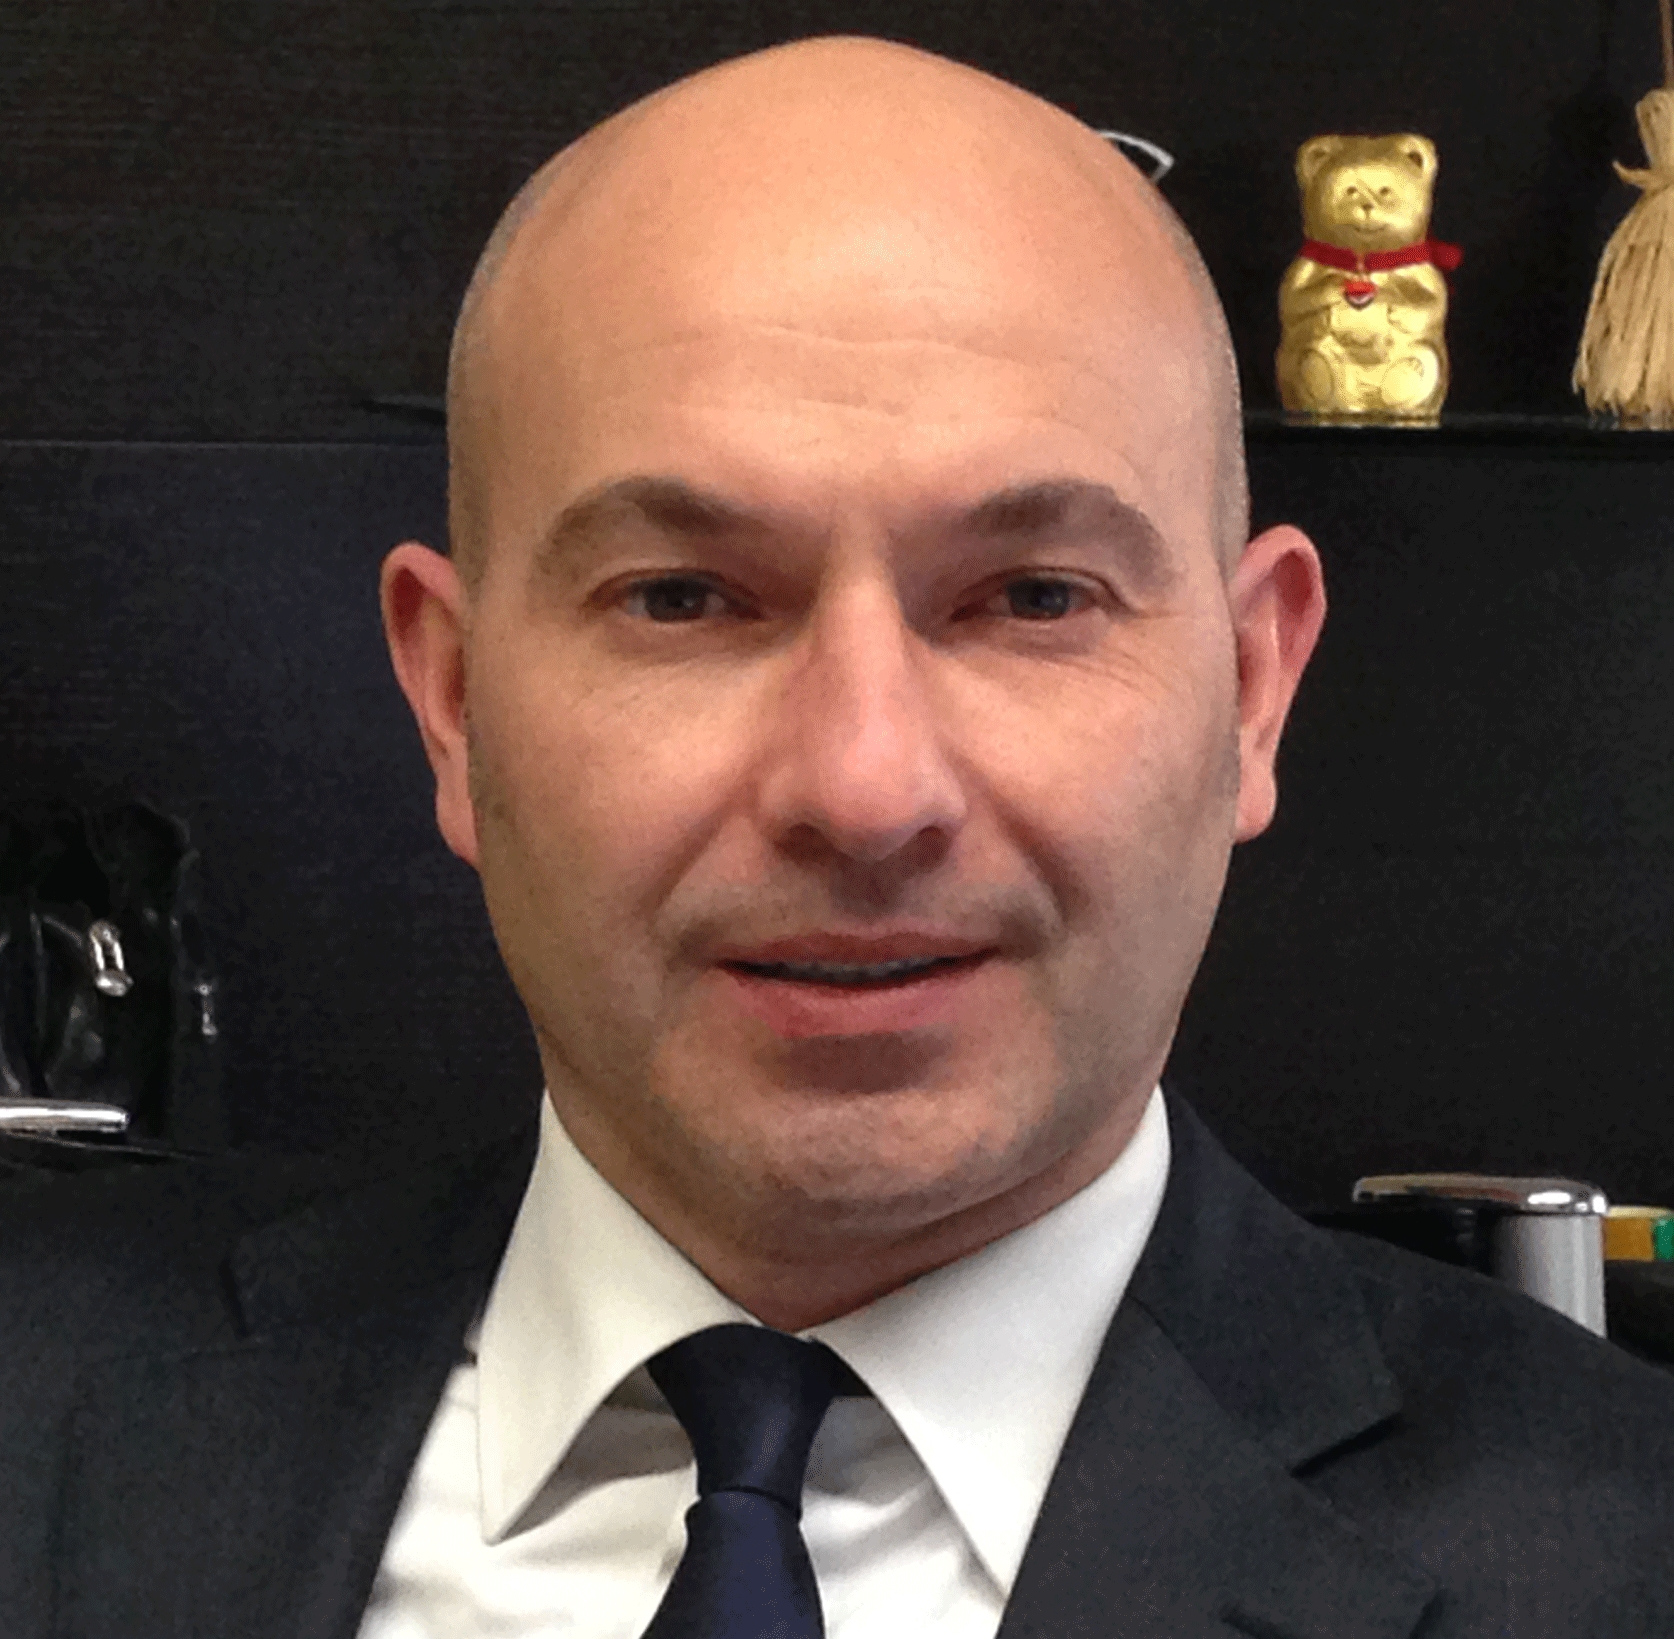 Roberto Brioschi, Vice President Italy, France and Spain di COMPAREX